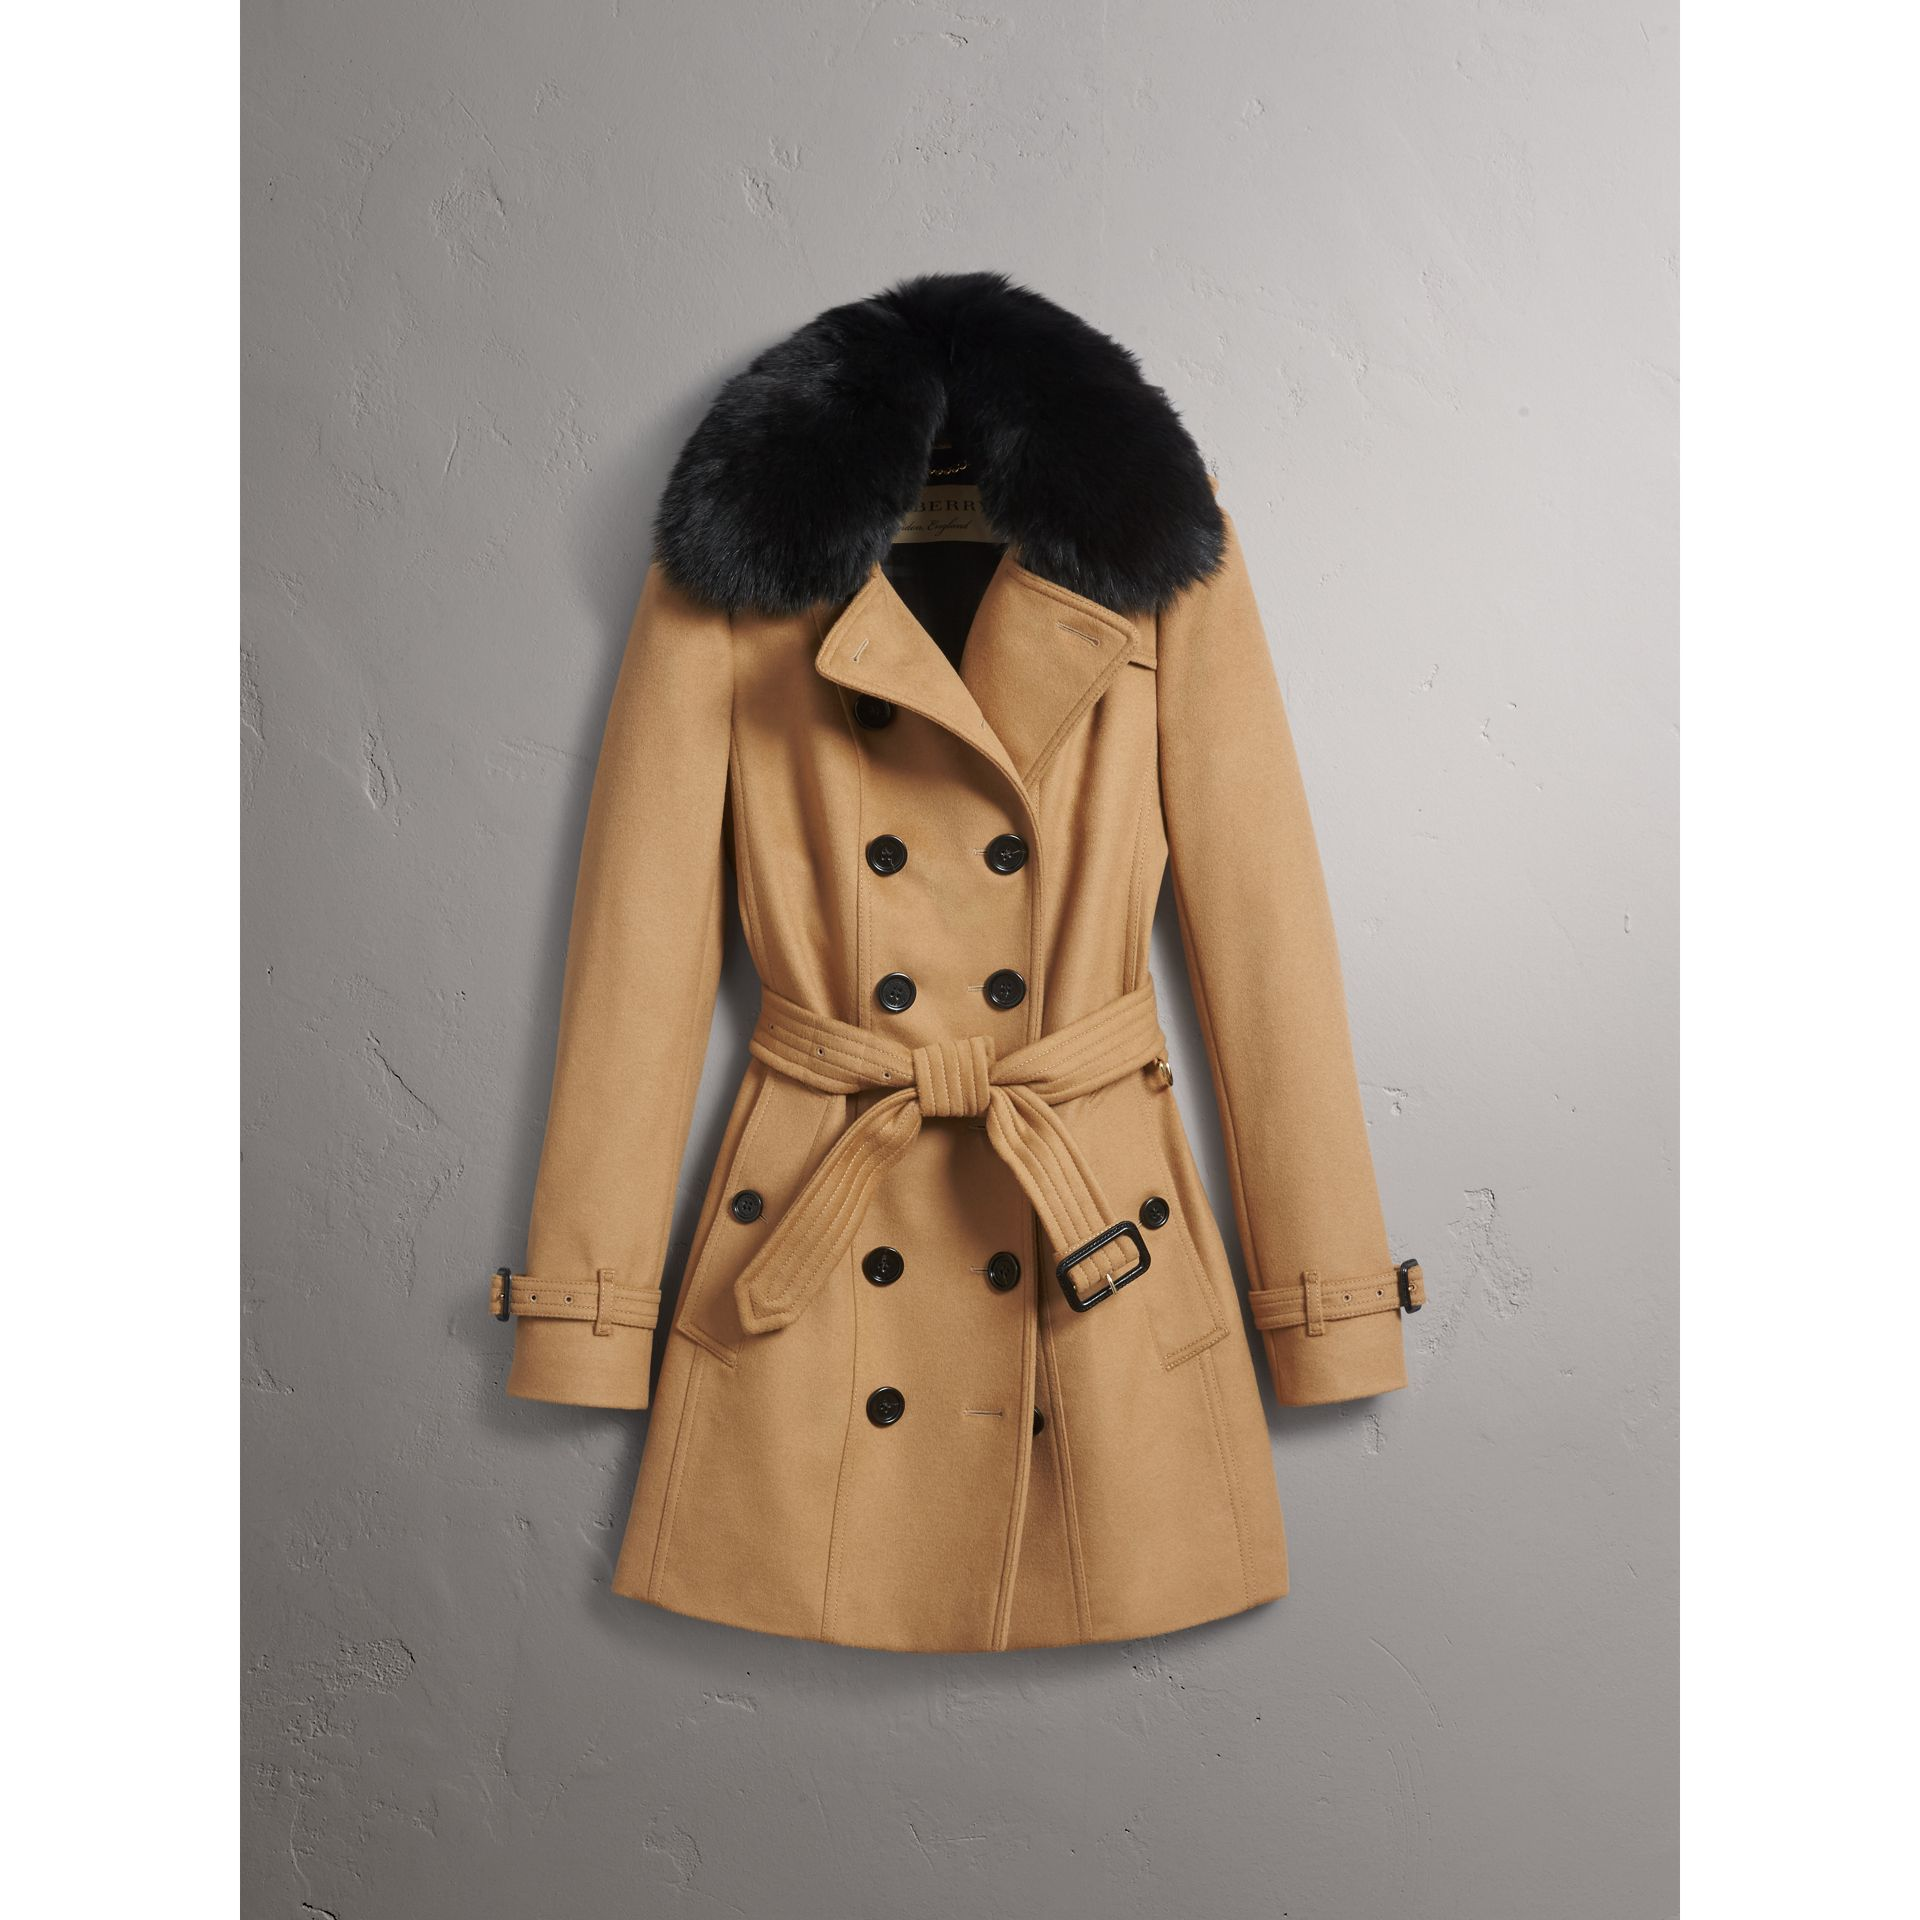 Wool Cashmere Trench Coat with Fur Collar in Camel - Women | Burberry